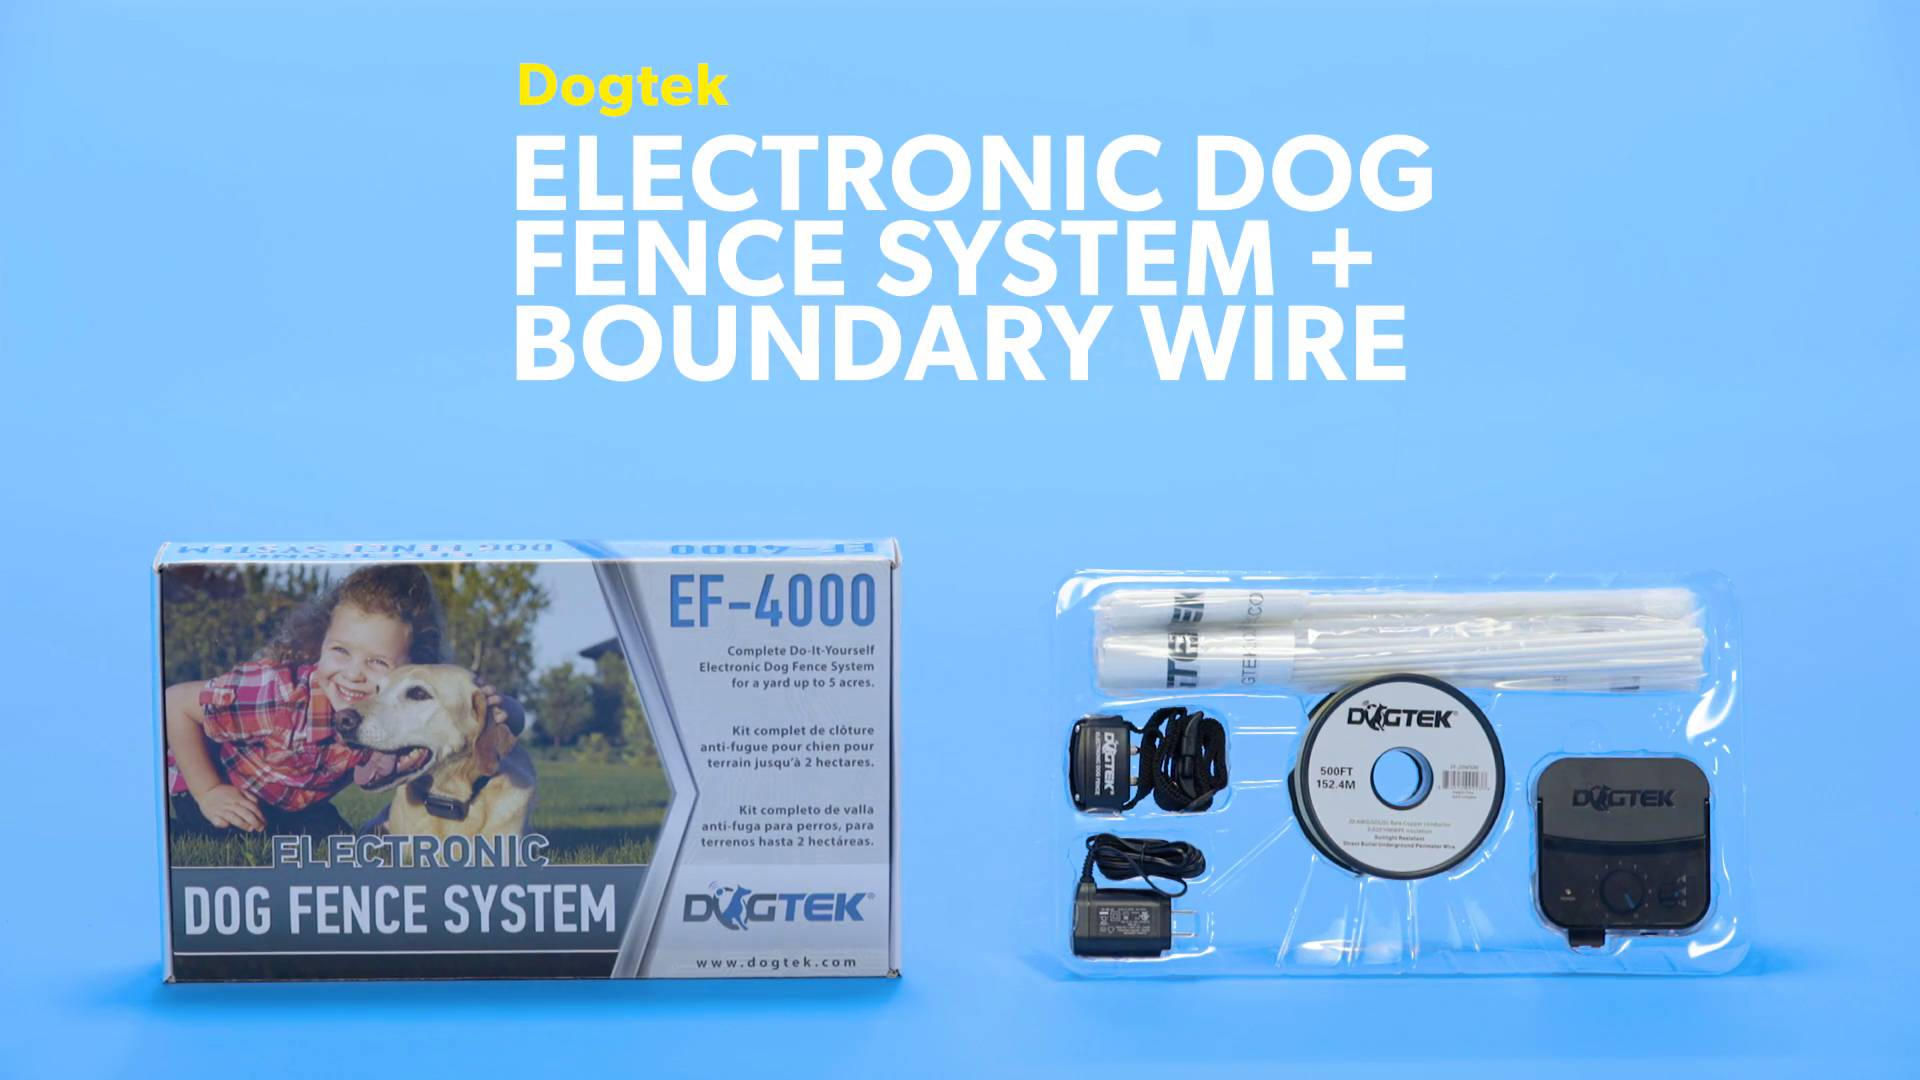 Dogtek electronic dog fence system chewy solutioingenieria Image collections